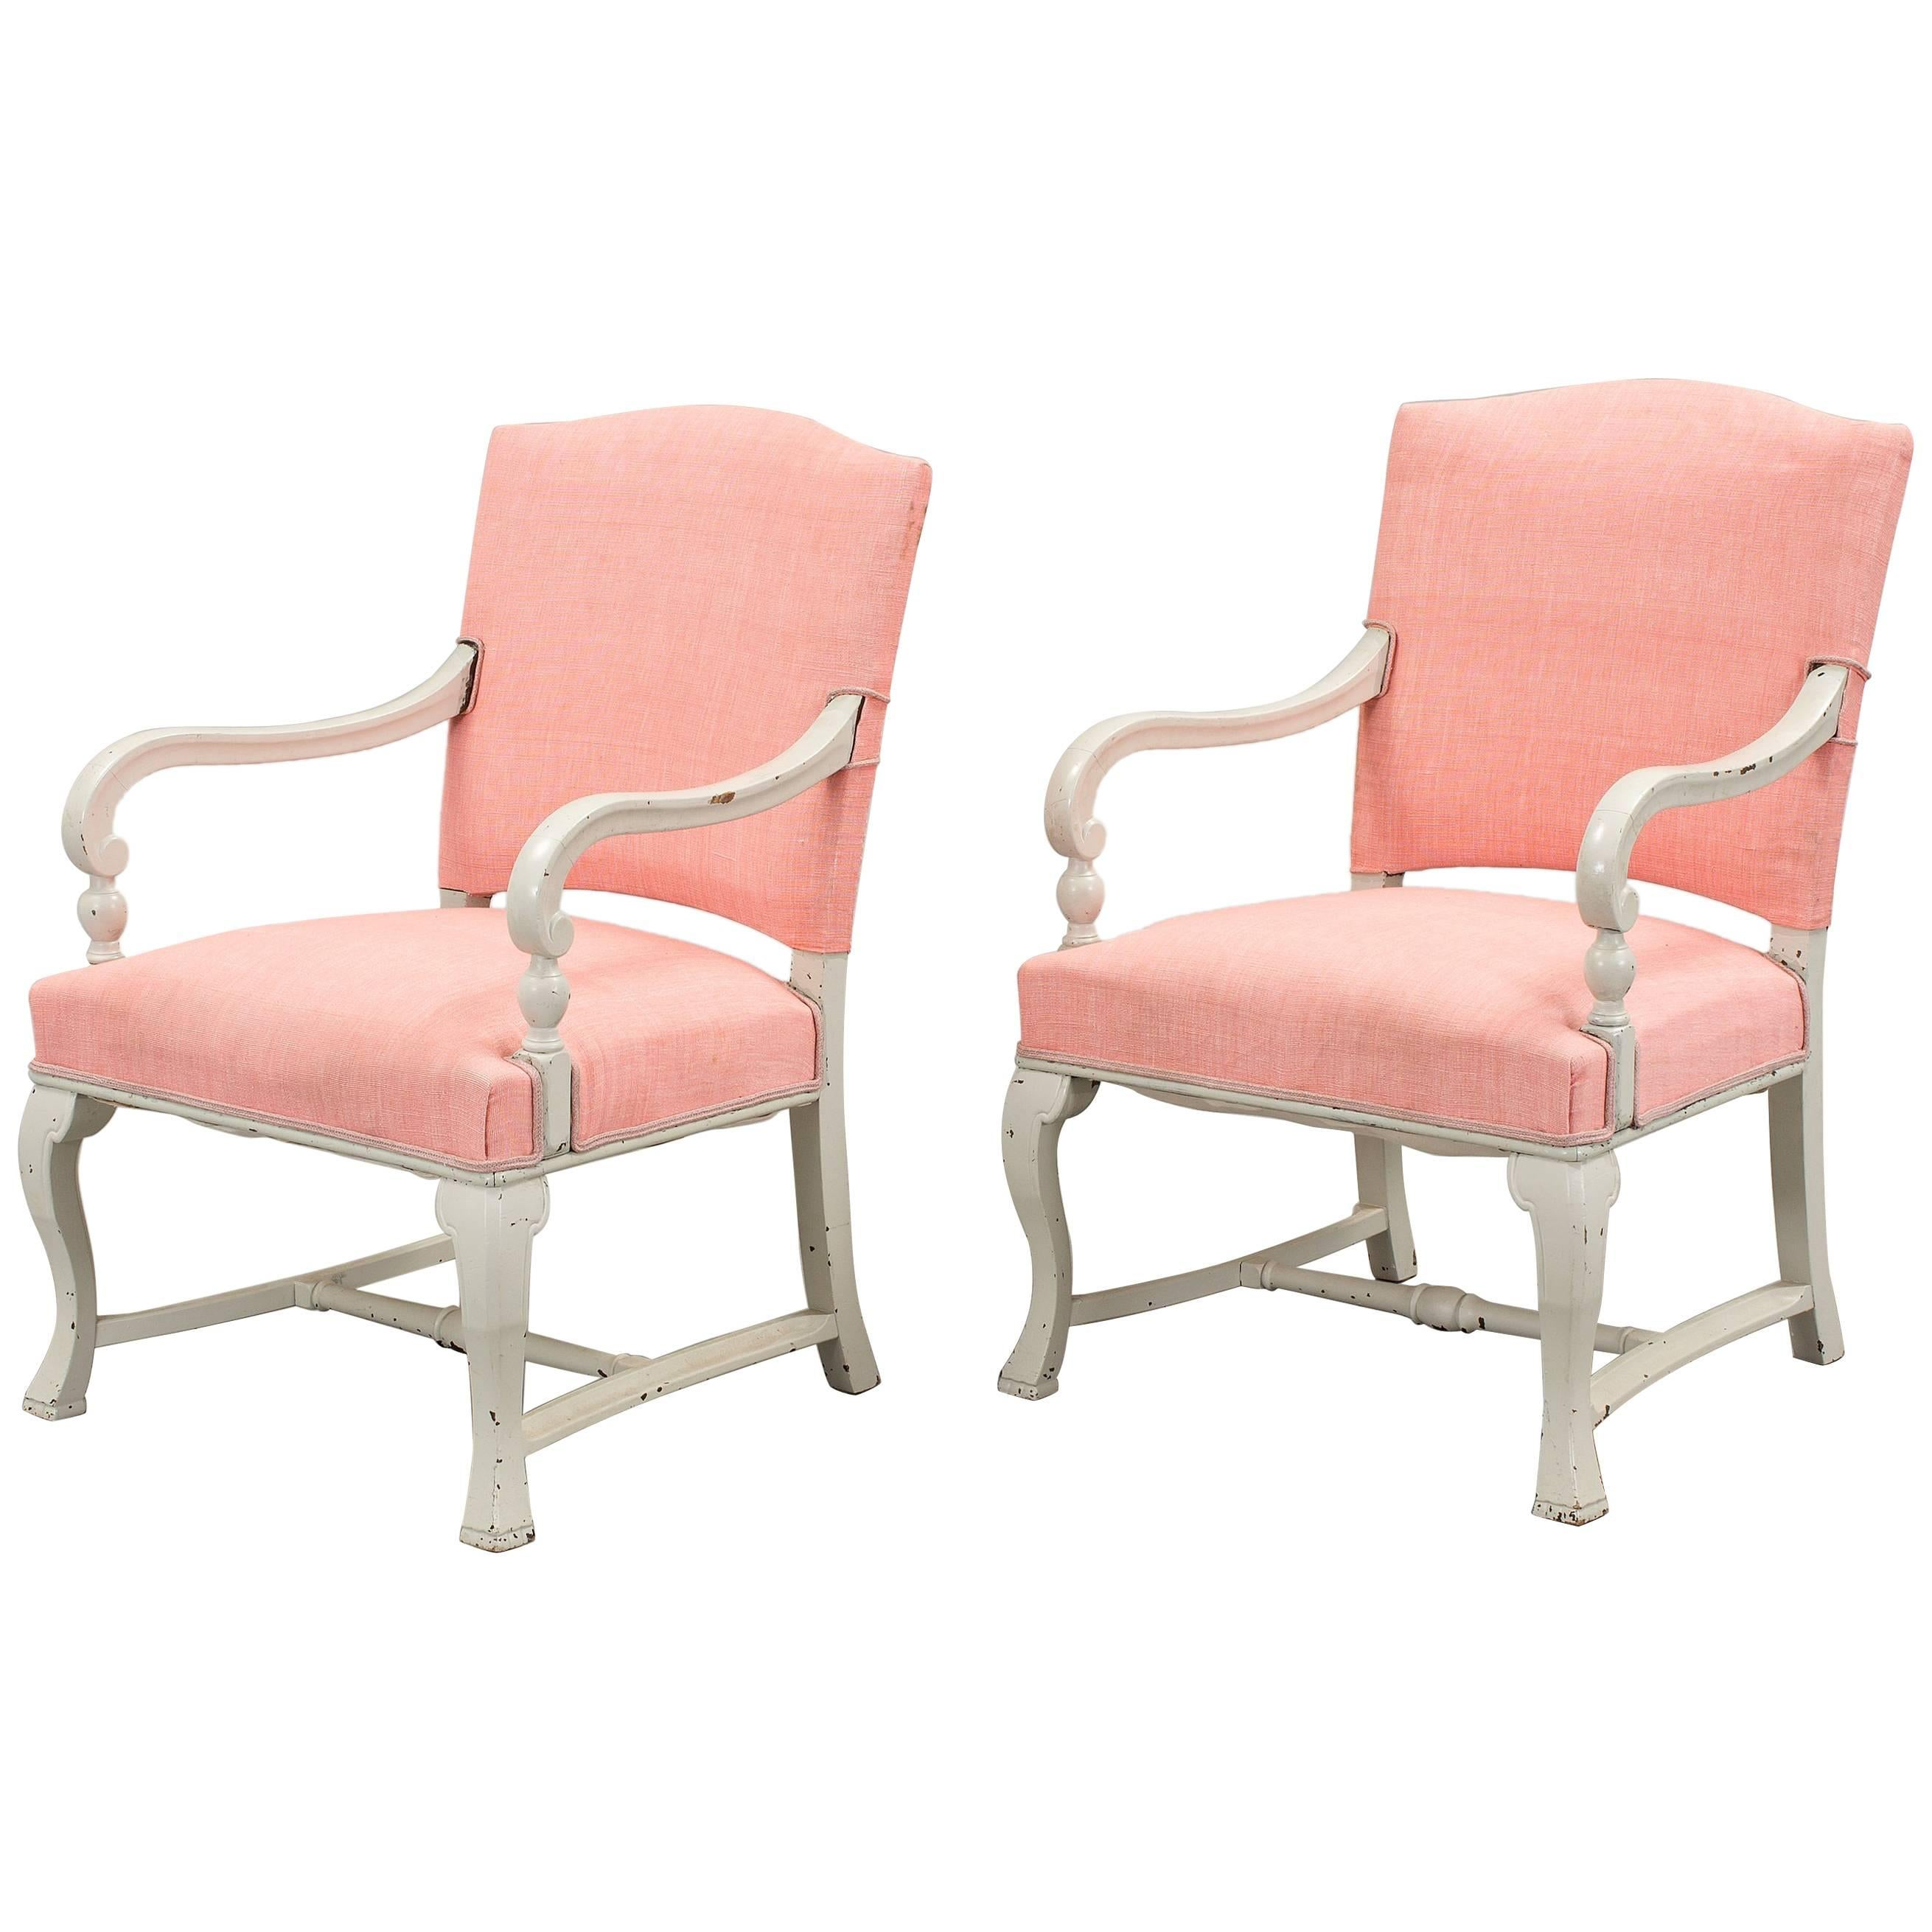 Pair of White Armchairs